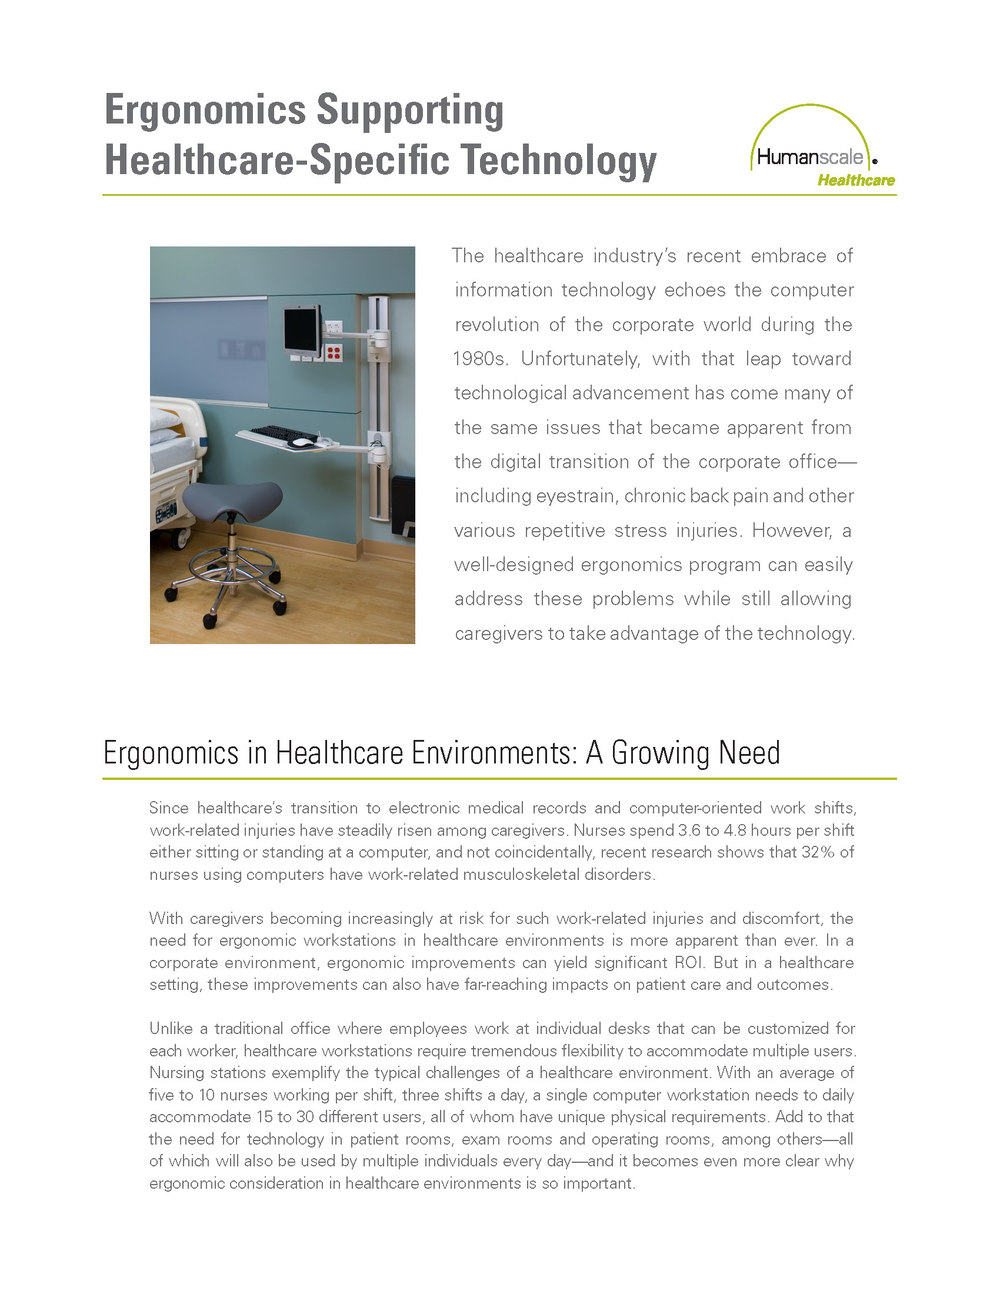 Ergonomics Supporting Healthcare-Specific Technology: courtesy of Humanscale